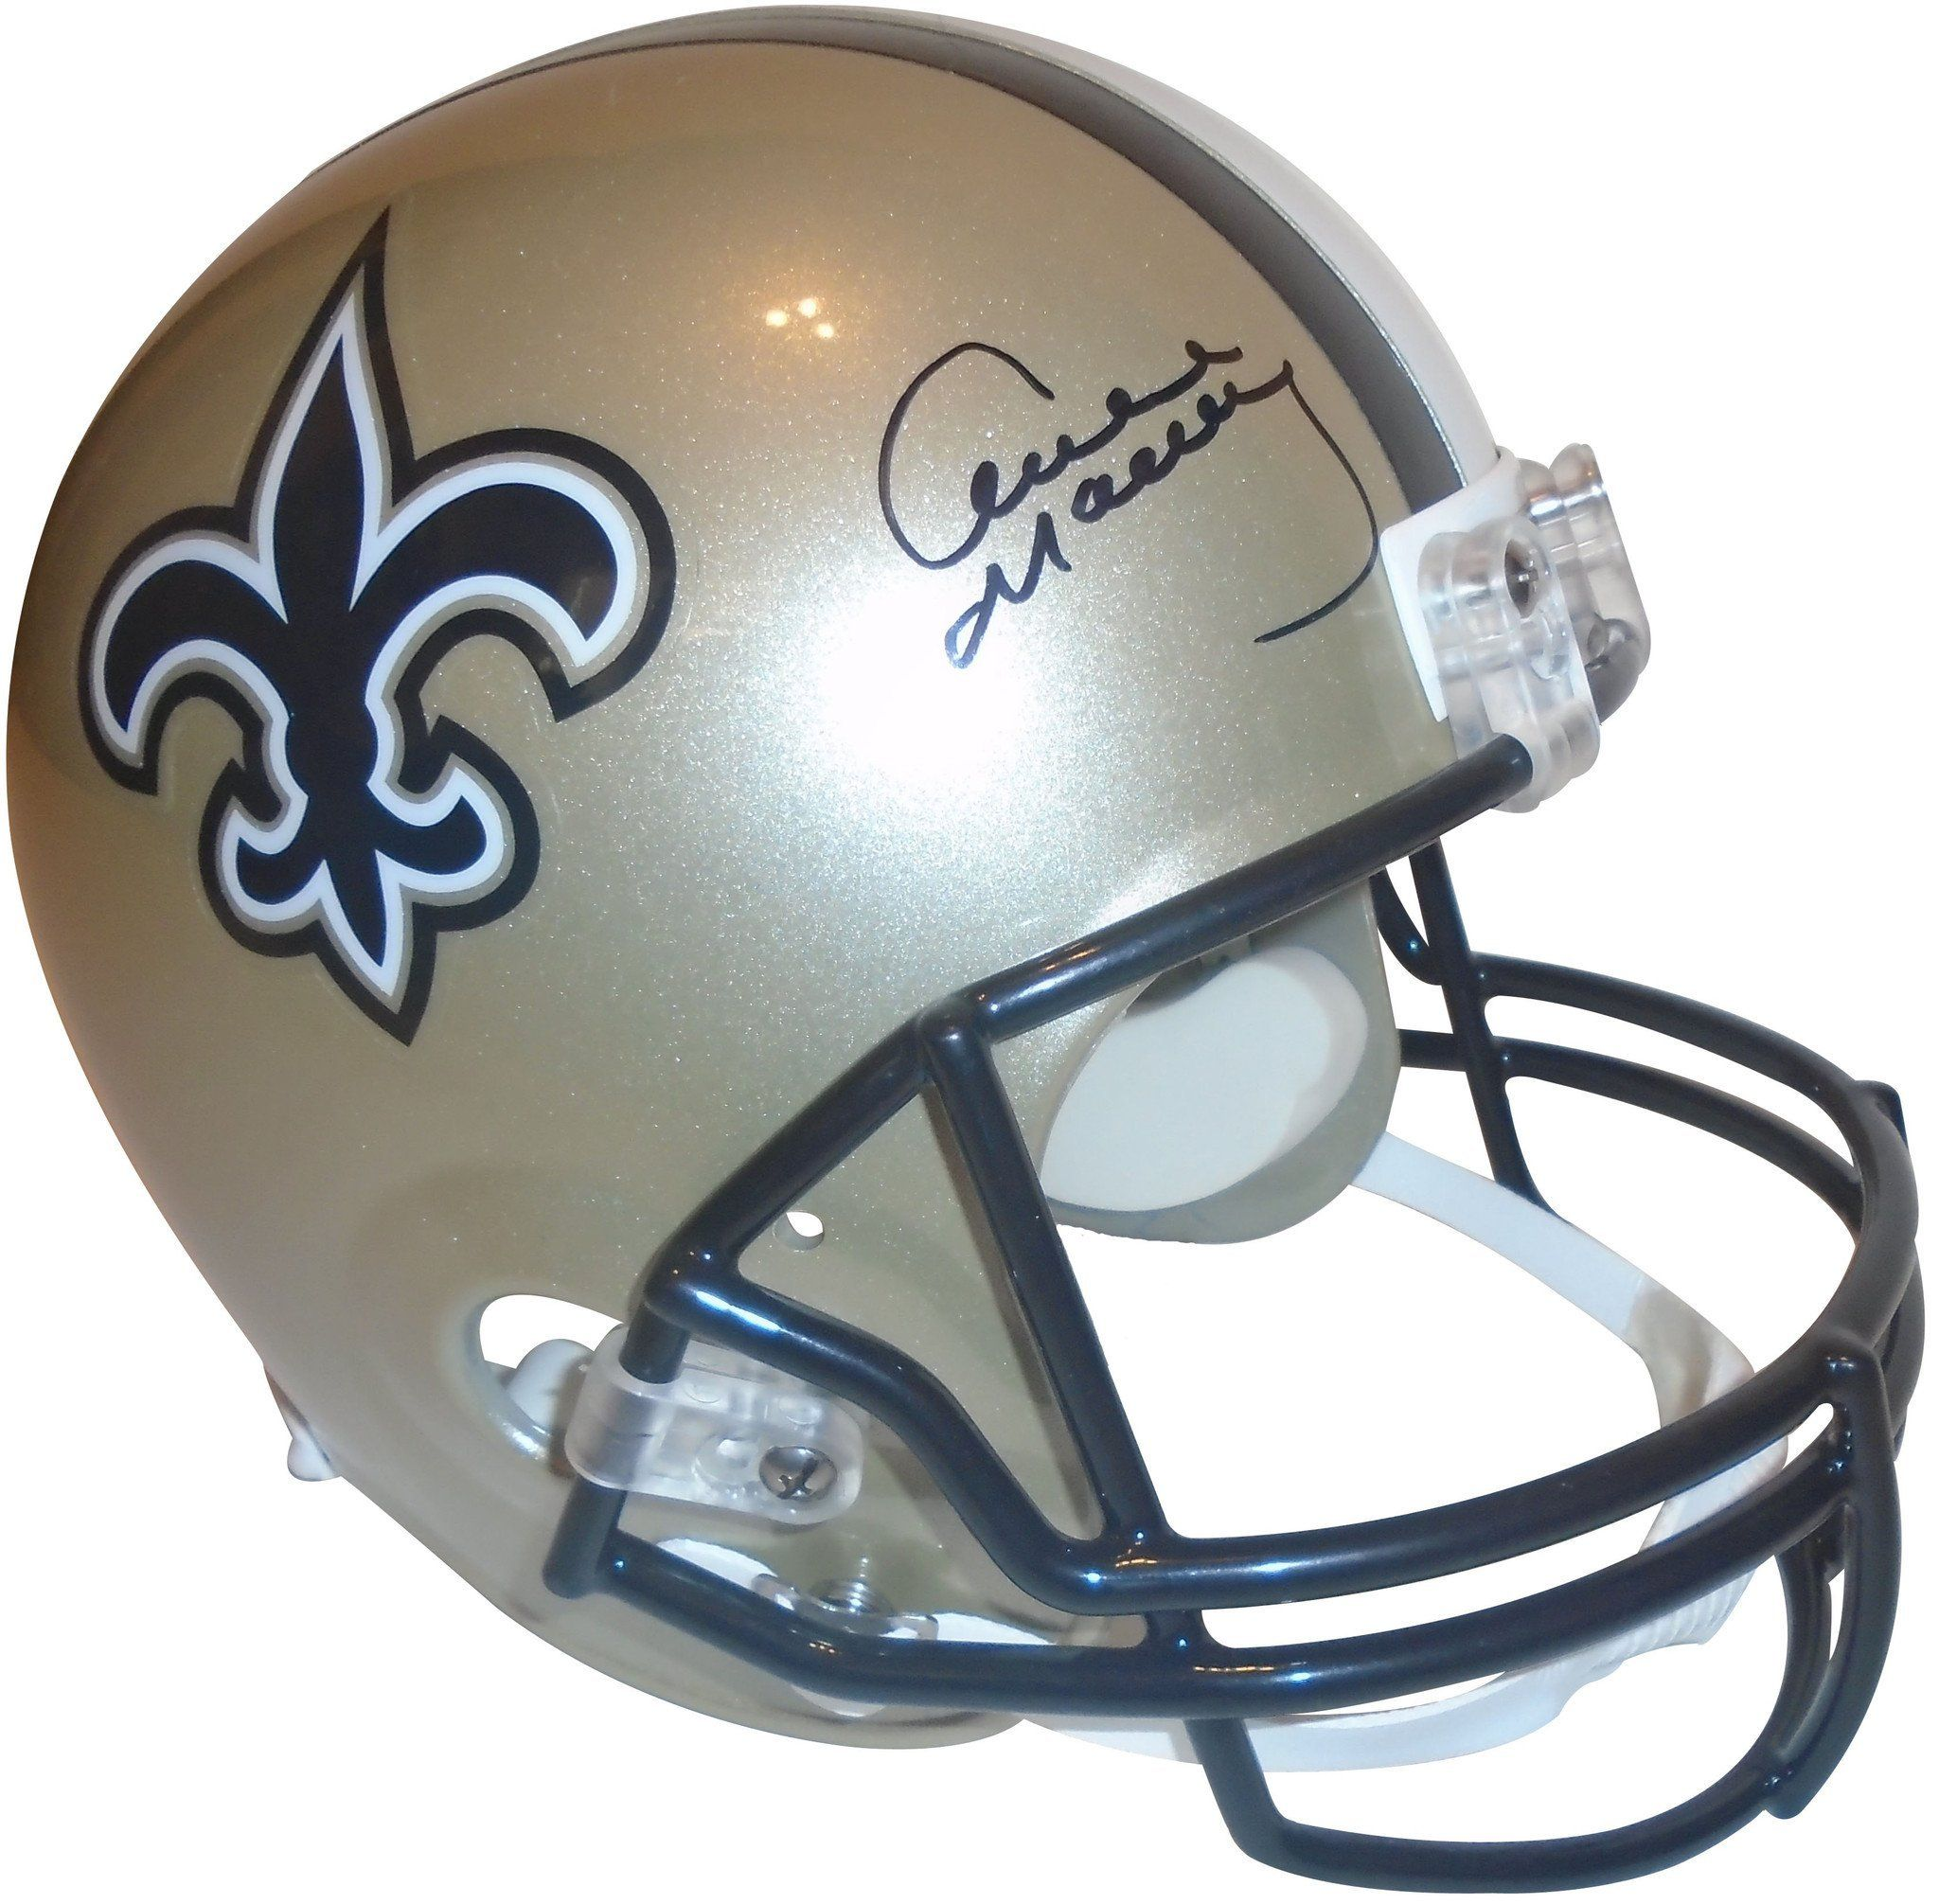 This is a brandnew Archie Manning signed New Orleans